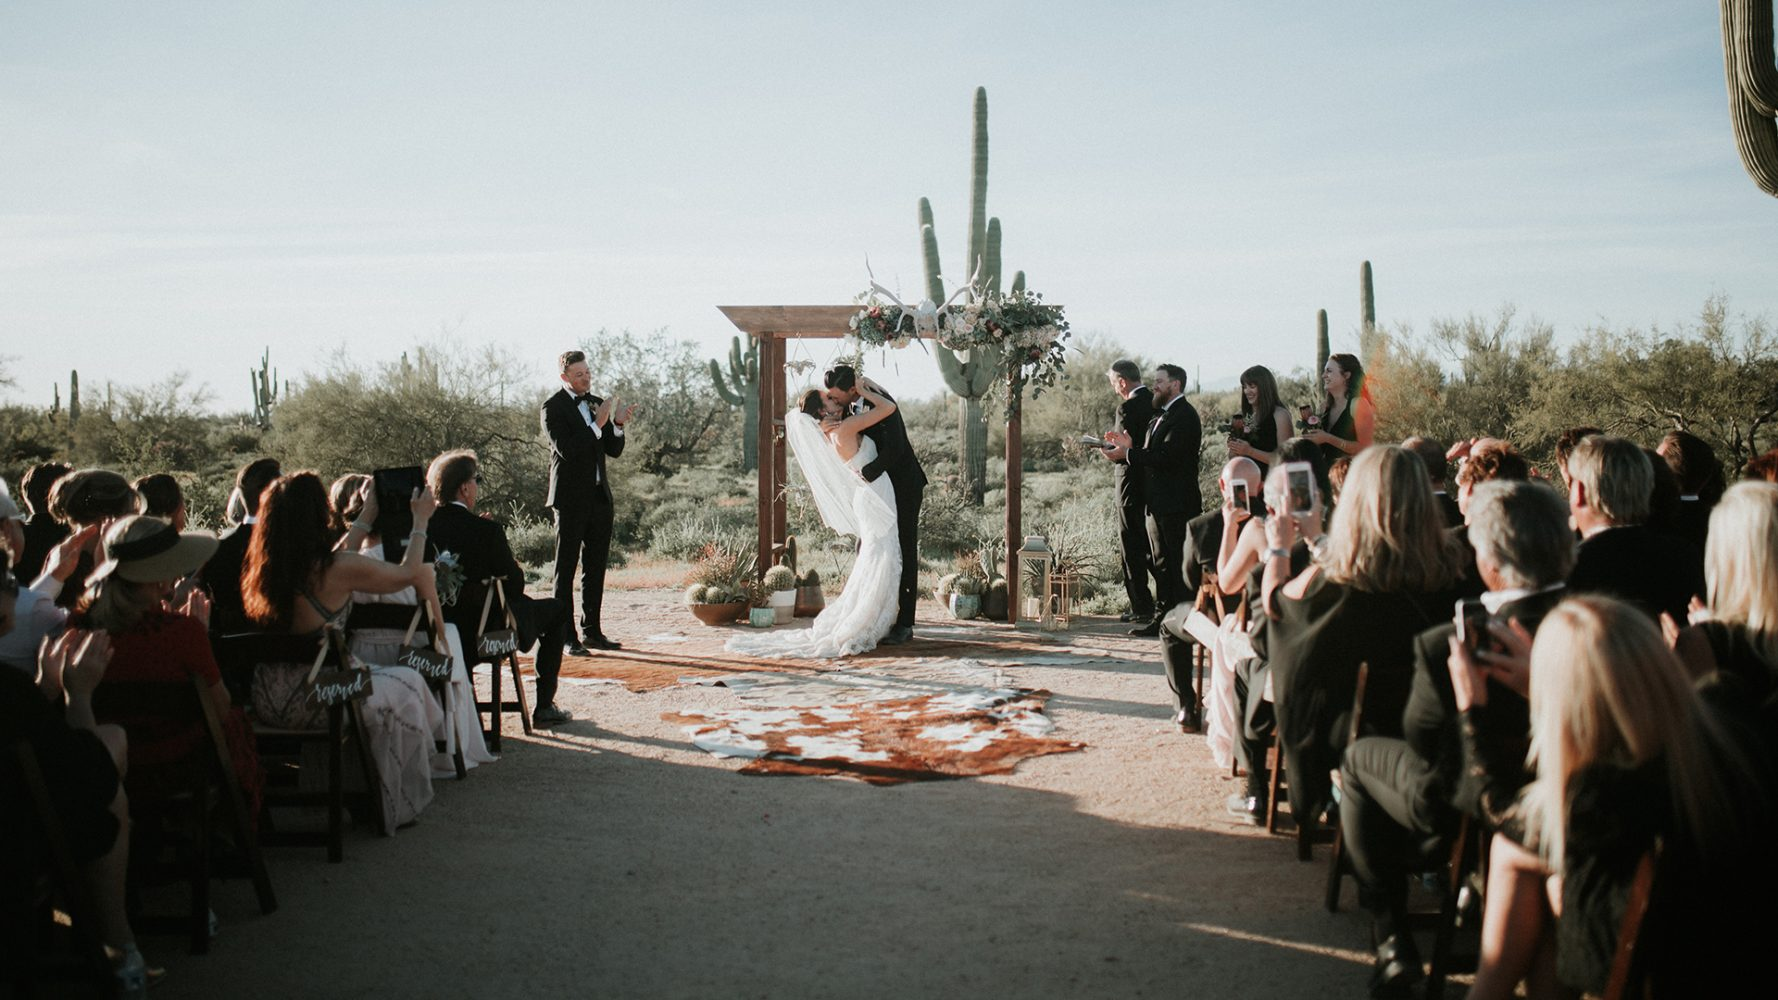 Jesse + Nick | Scottsdale, Arizona | Desert Foothills